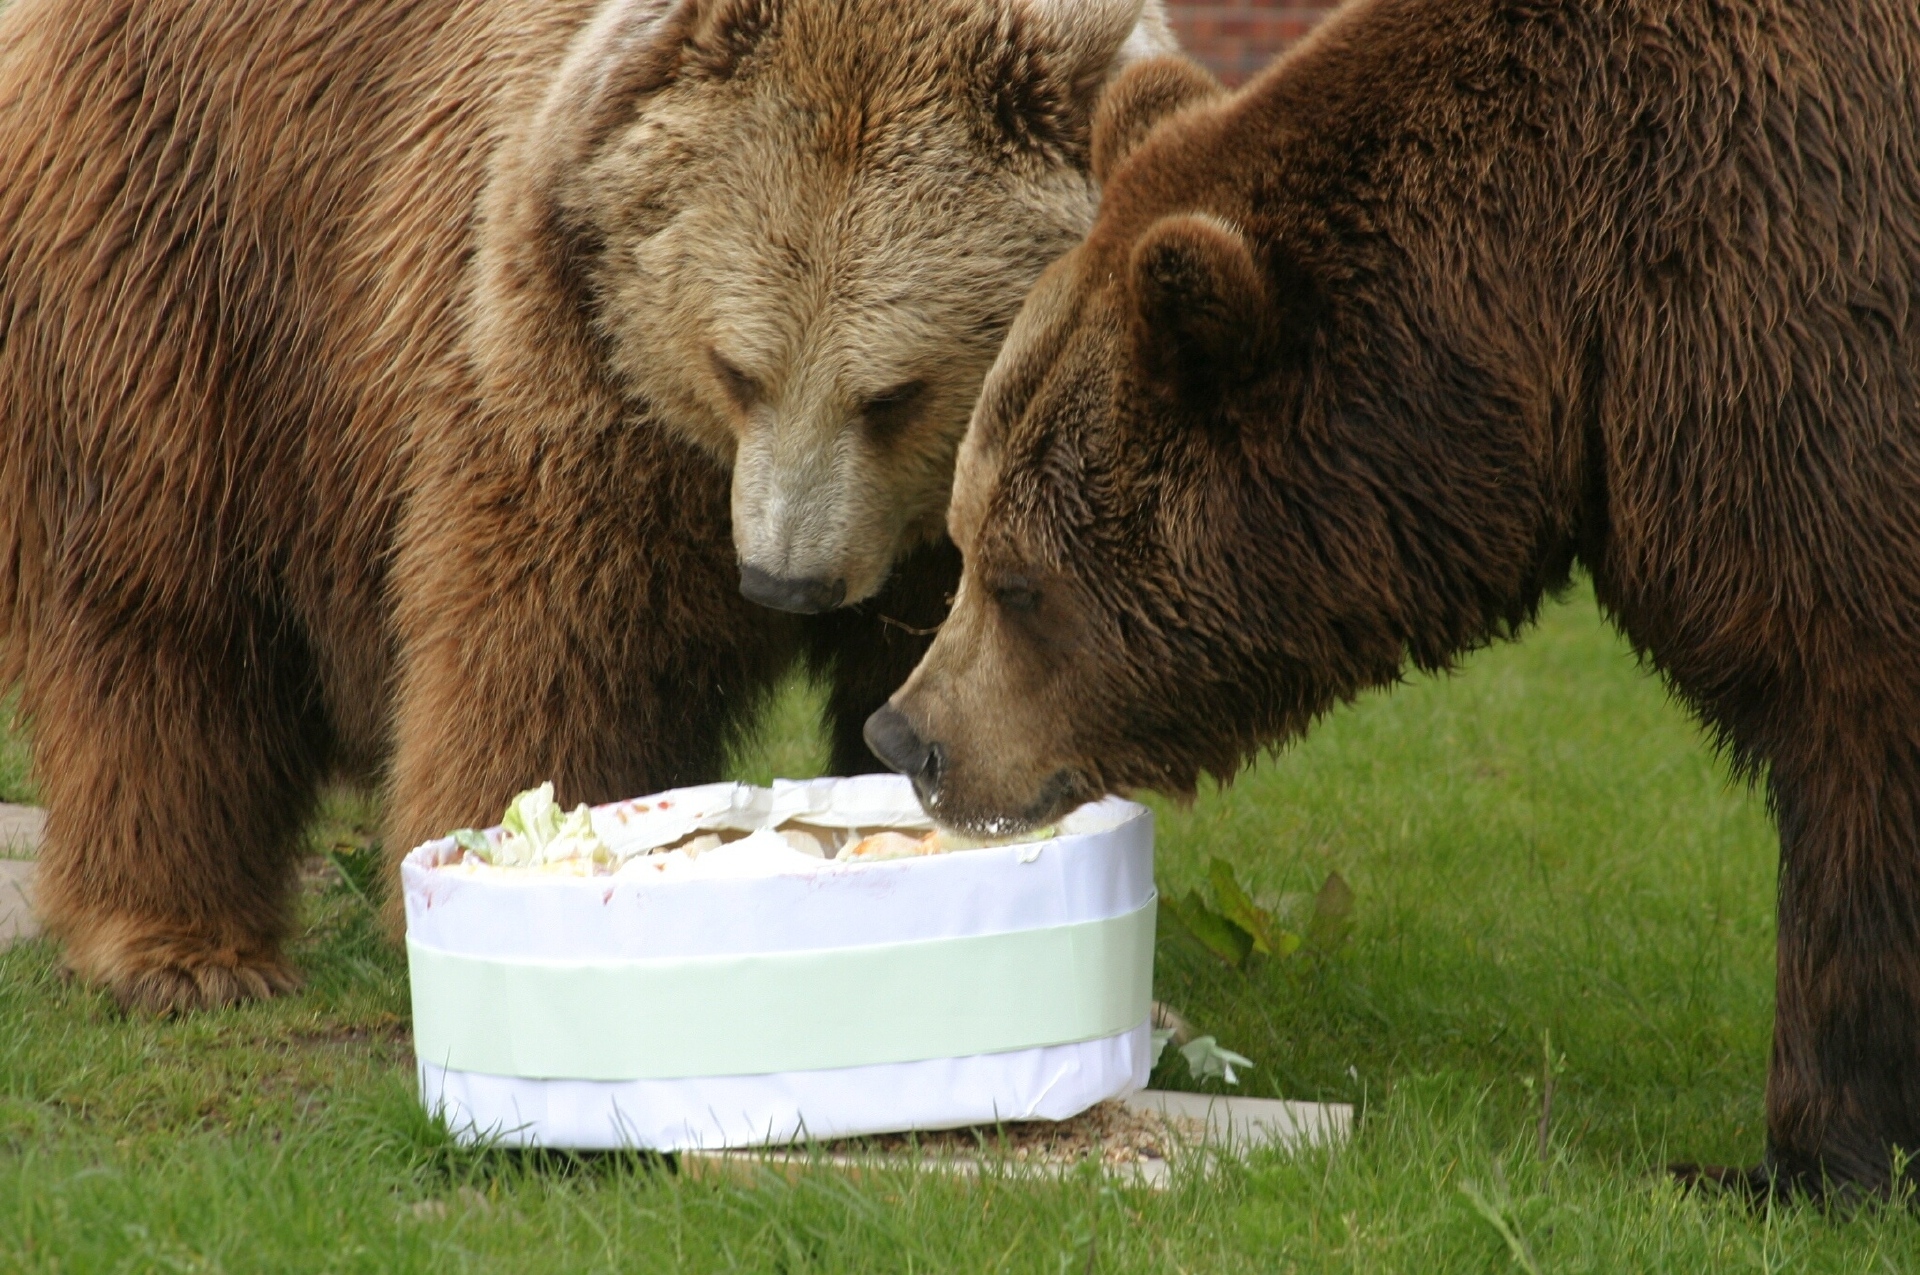 Pictured at Camperdown Park, Dundee, 20th May 2006, is Comet (right), the European Brown Bear, enjoyed a cake for his 20th birthday, with fellow bear Star hoping to get some scraps.